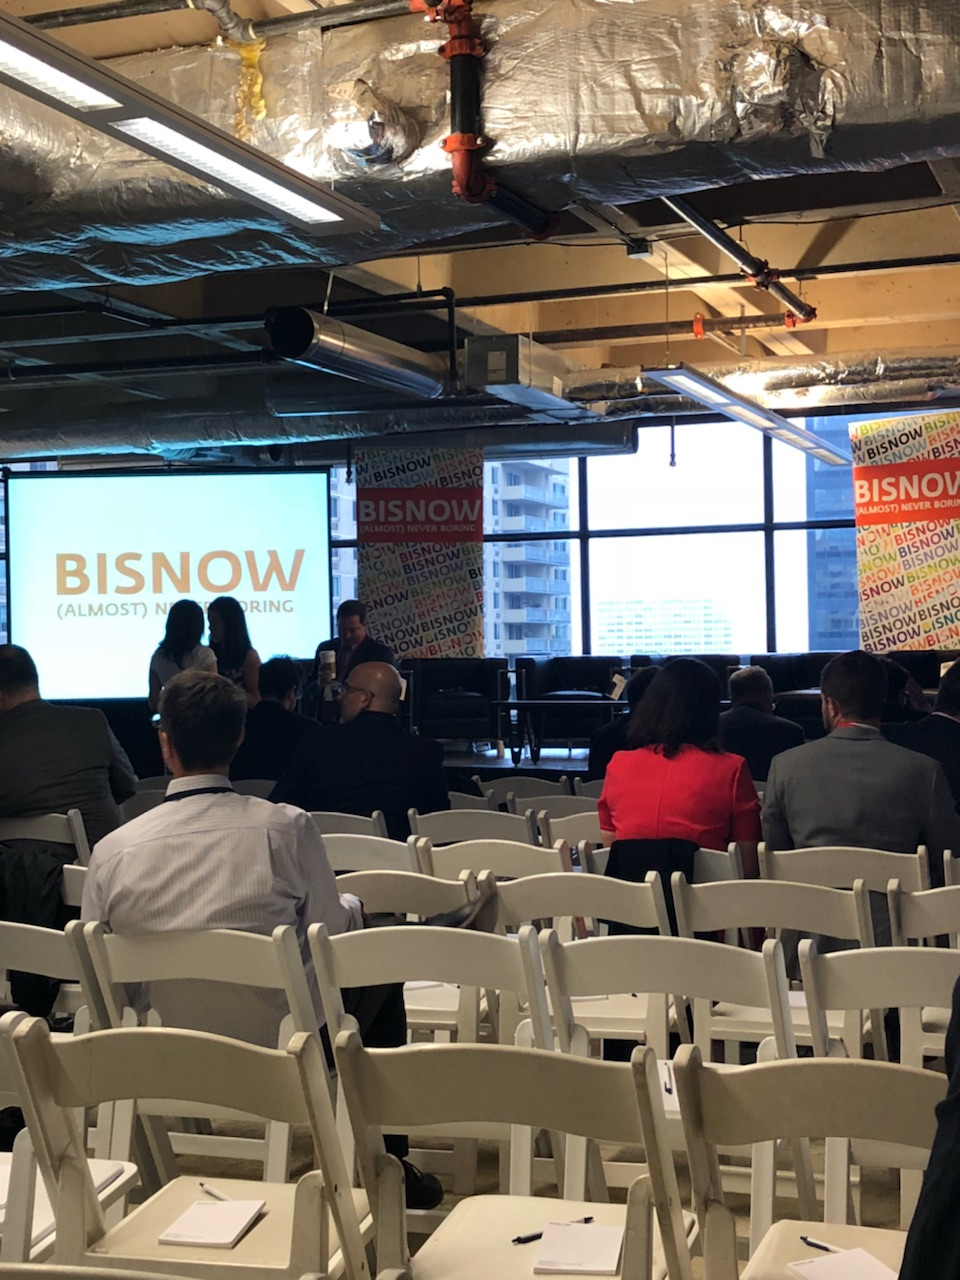 Real Estate is all about relationships, and networking opportunities especially at the Bisnow Philadelphia State of the Market Event!